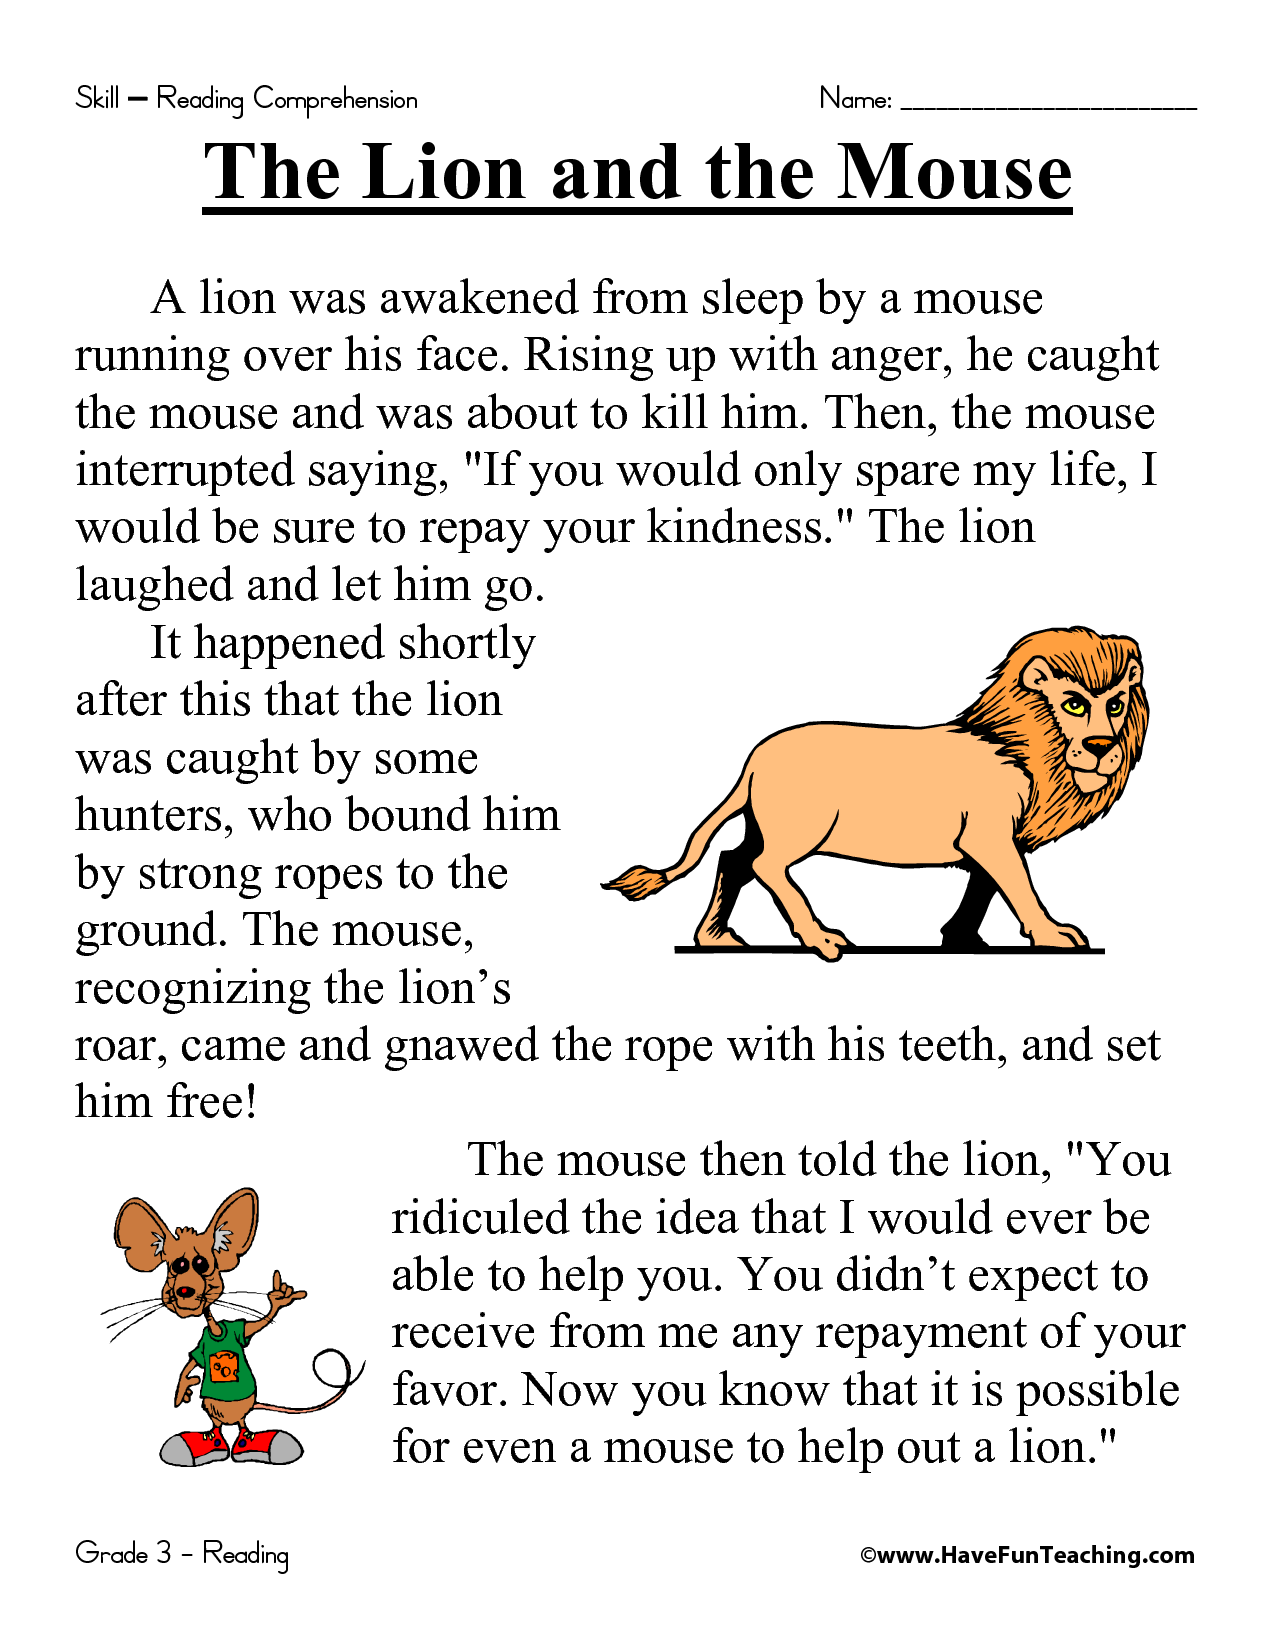 Worksheet Short Stories For Third Grade first grade reading comprehension worksheets the lion and mouse worksheet